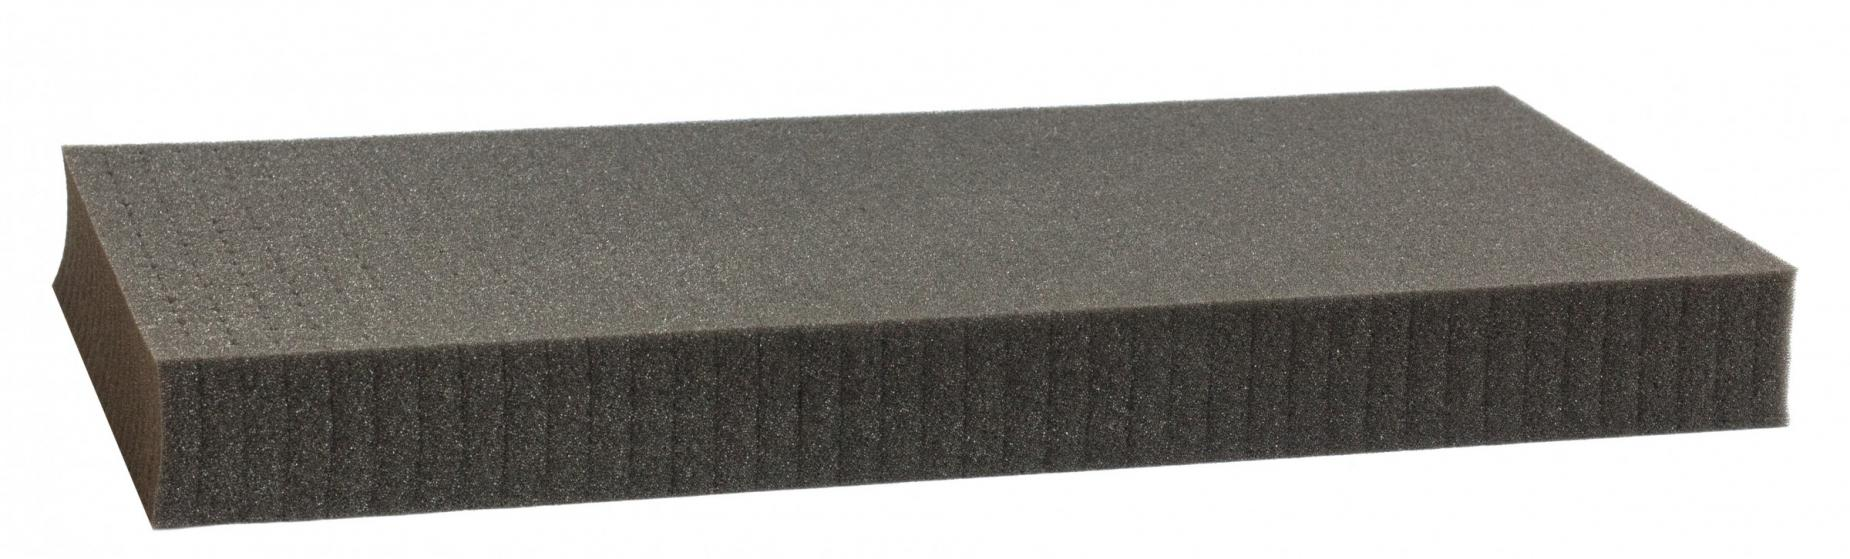 1000 mm x 500 mm x 50 mm - Raster 15 mm - Pick and Pluck / Pre-Cubed foam tray